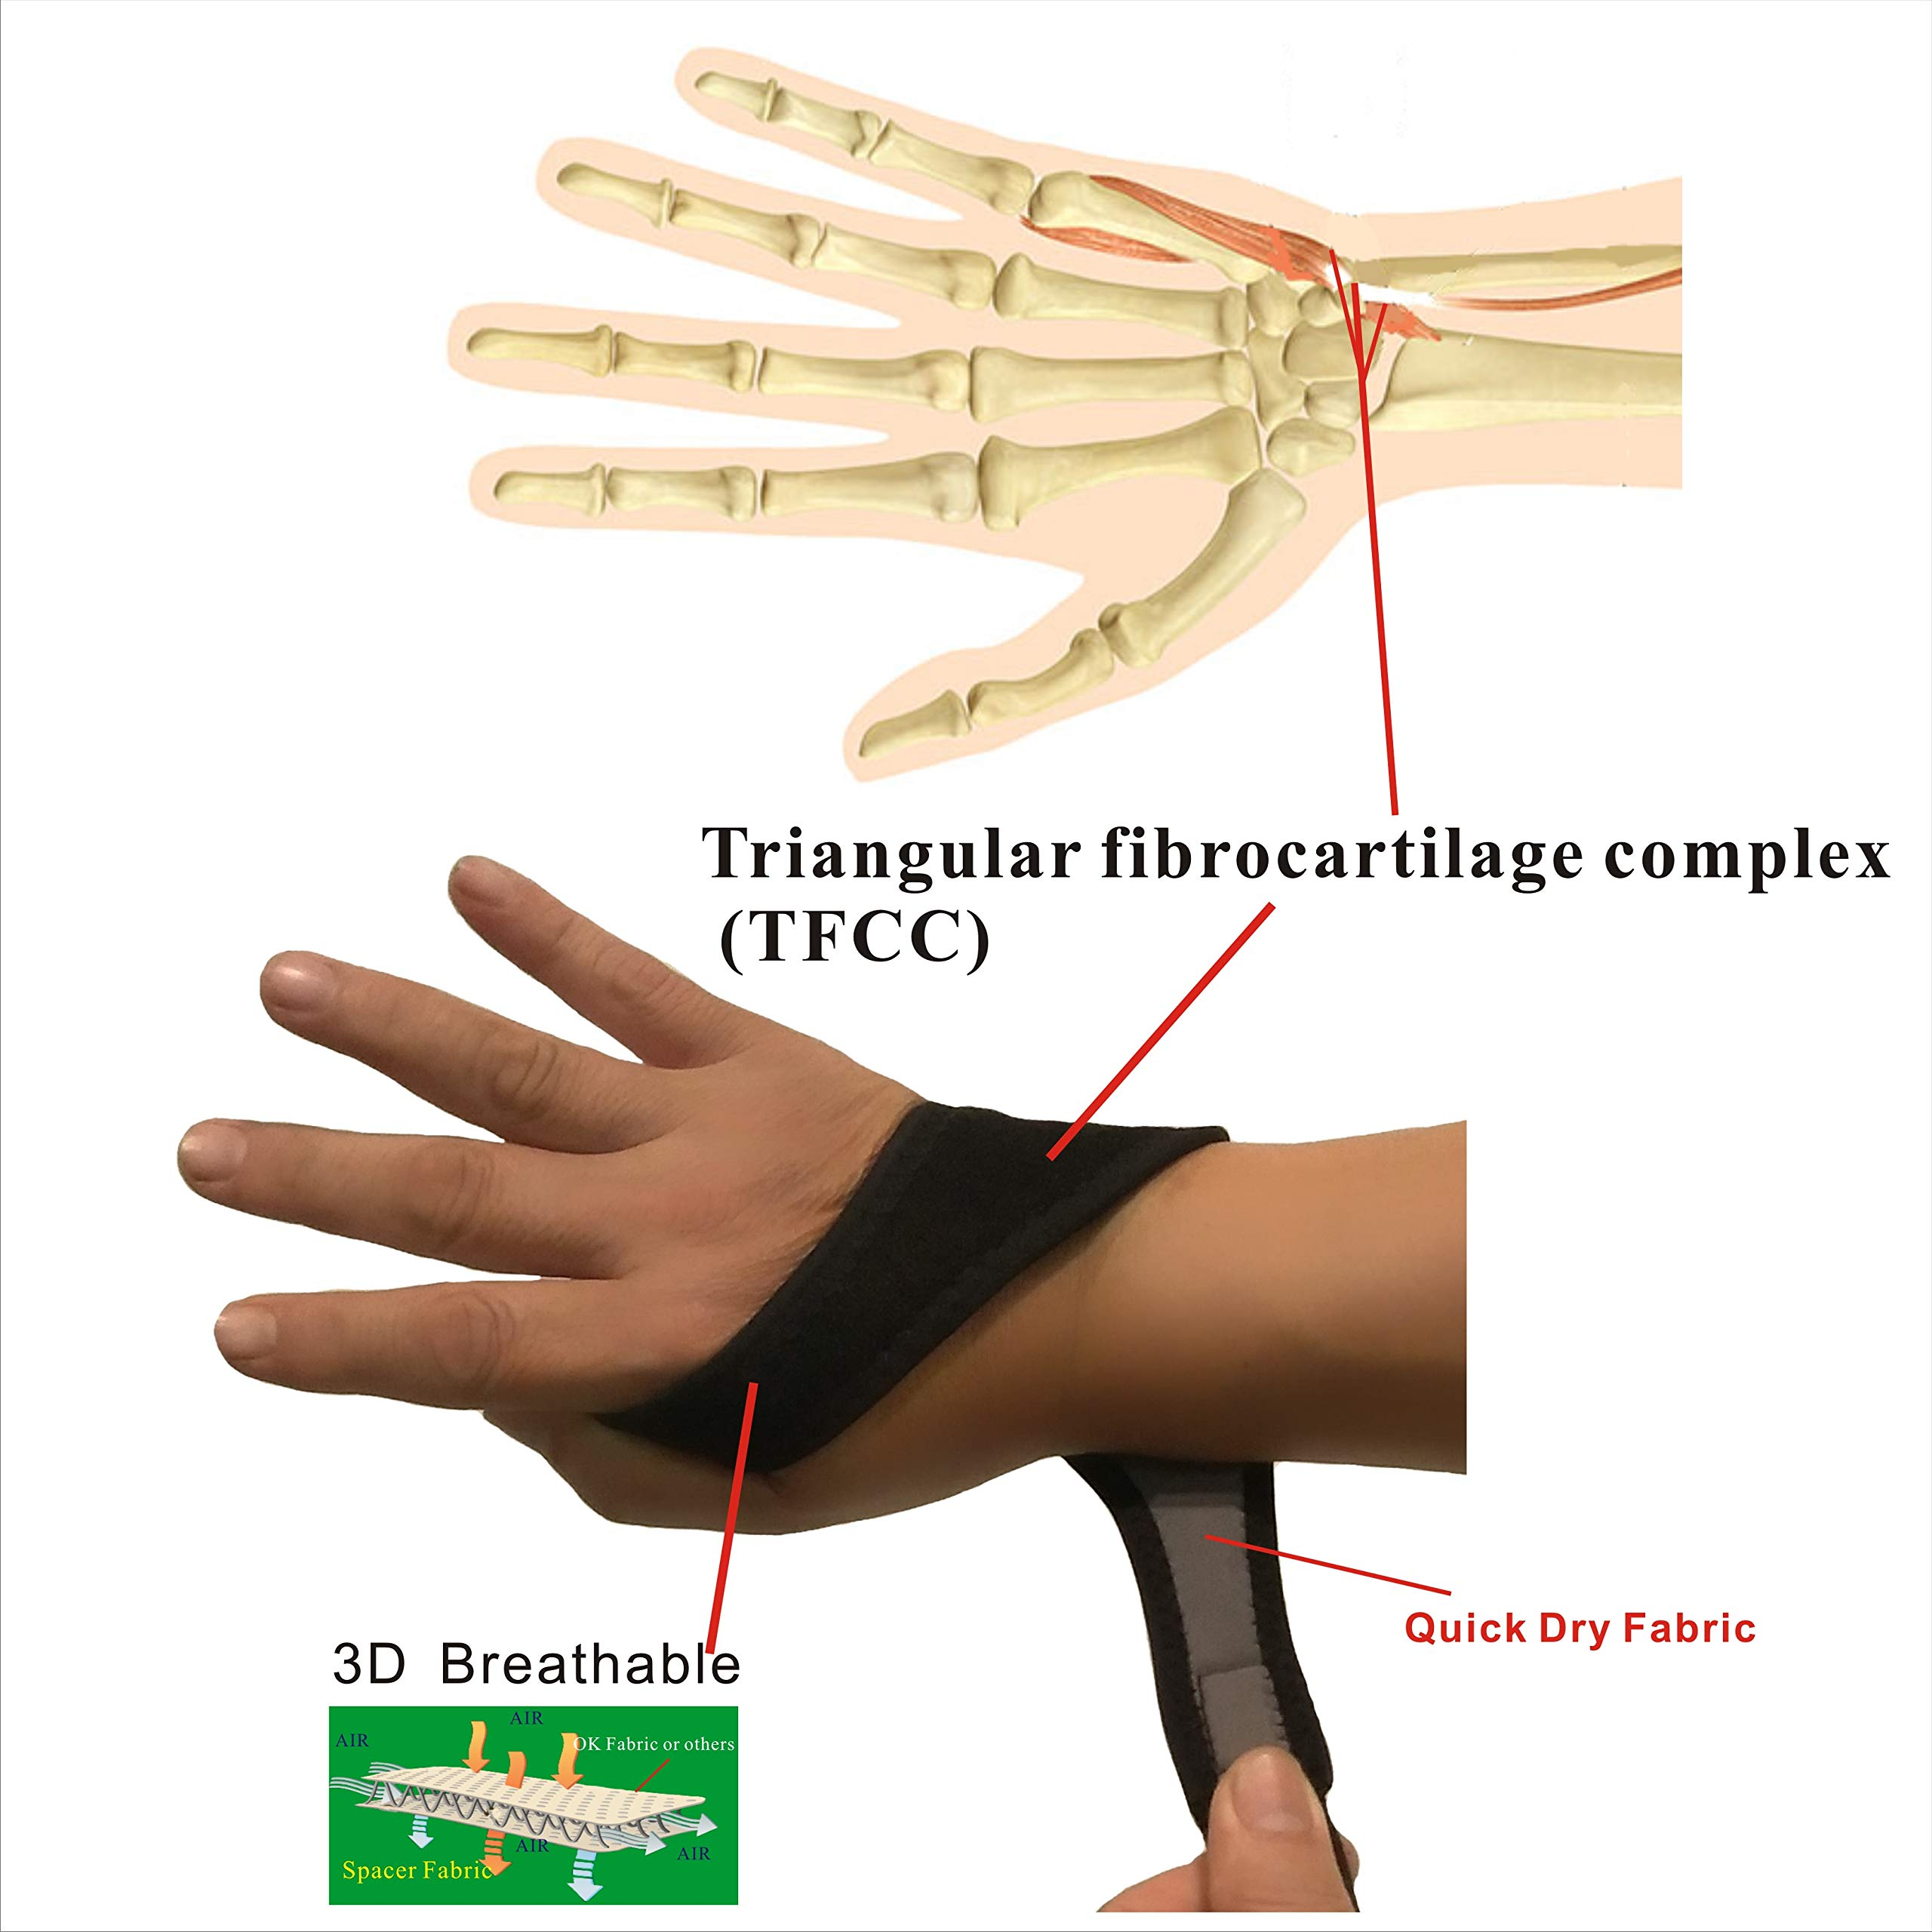 IRUFA,WR-OS-17,3D Breathable Spacer Fabric Wrist Brace, for TFCC Tear- Triangular Fibrocartilage Complex Injuries, Ulnar Sided Wrist Pain, Weight Bearing Strain, One PCS (Spacer Fabric) by IRUFA (Image #1)